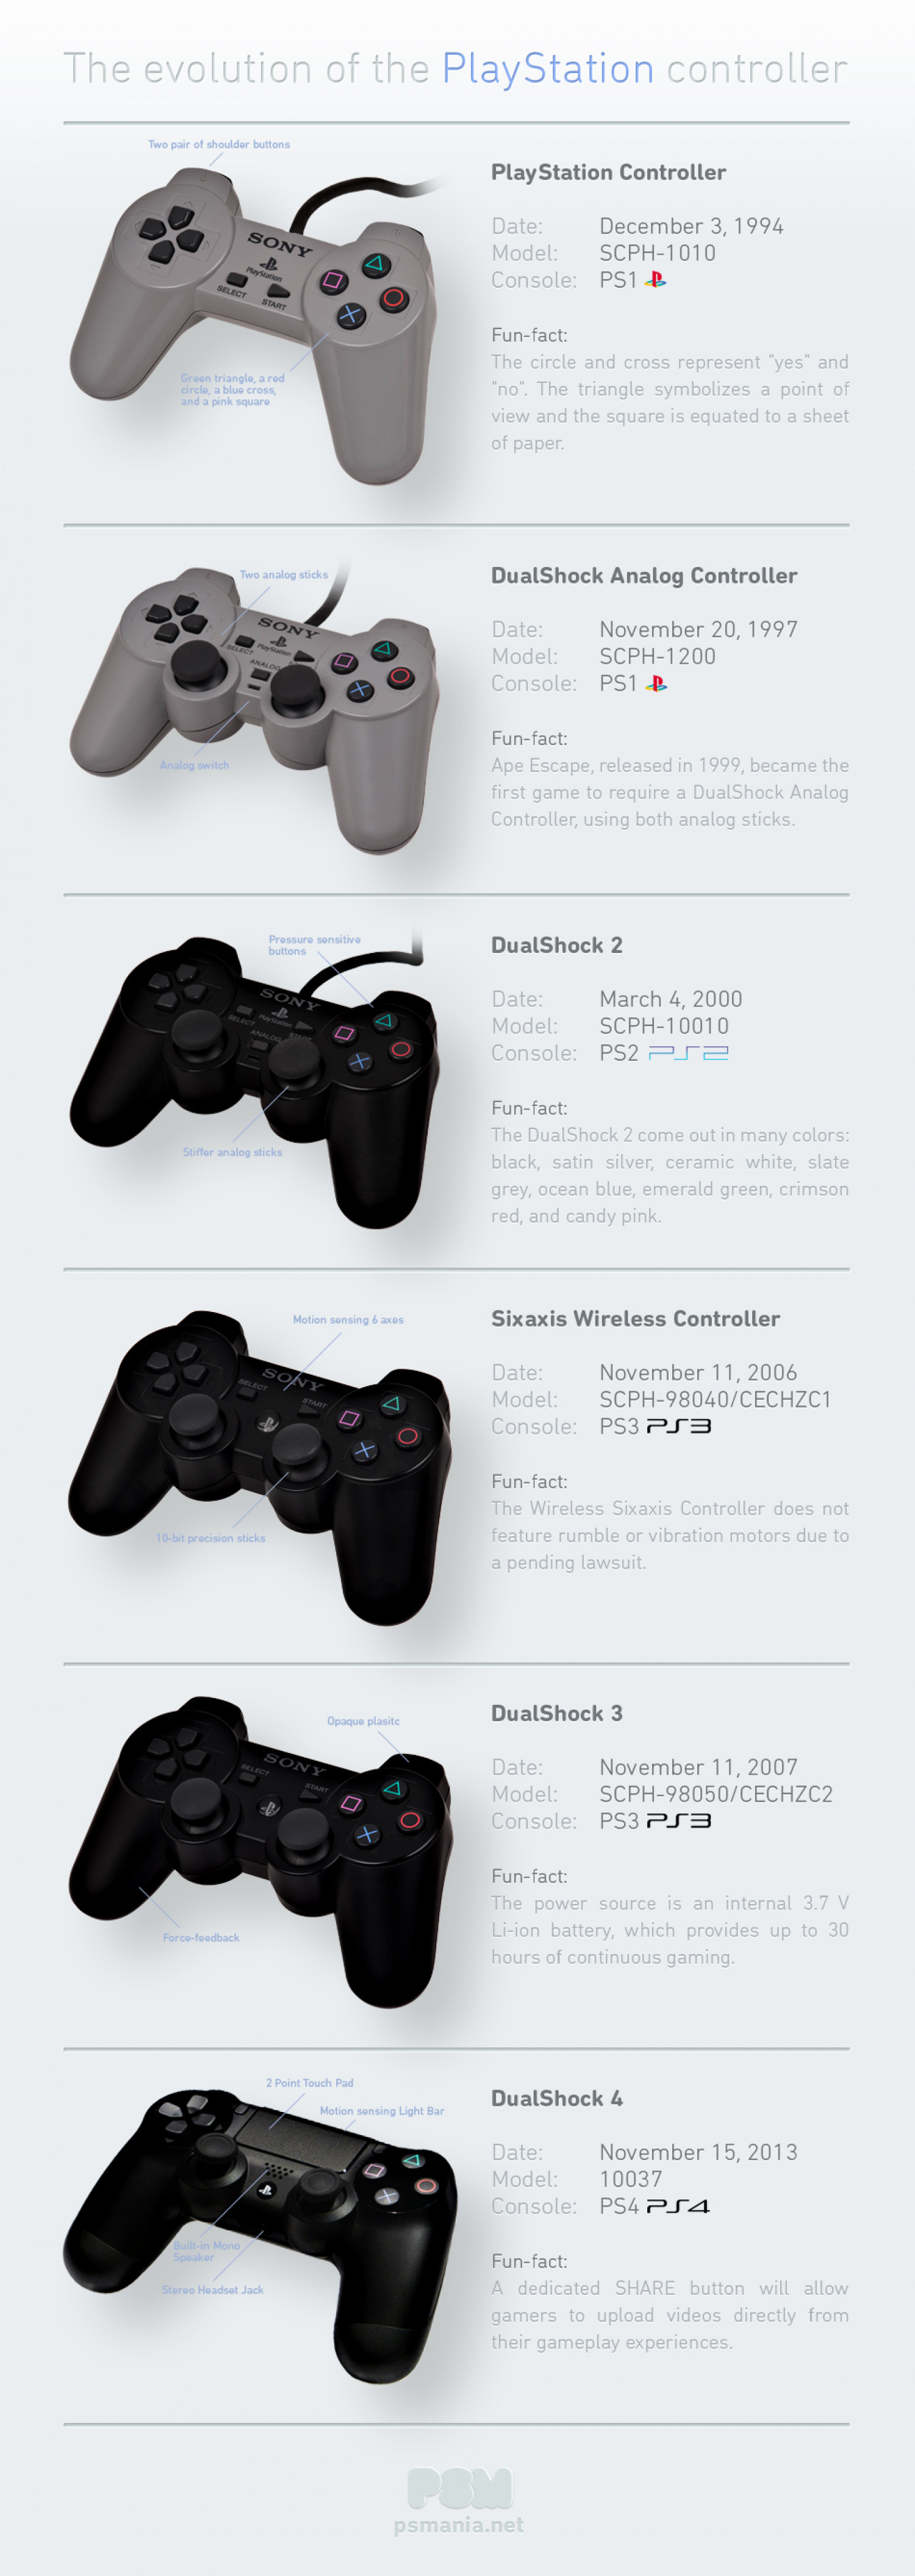 The Evolution of the PlayStation Controller Infographic